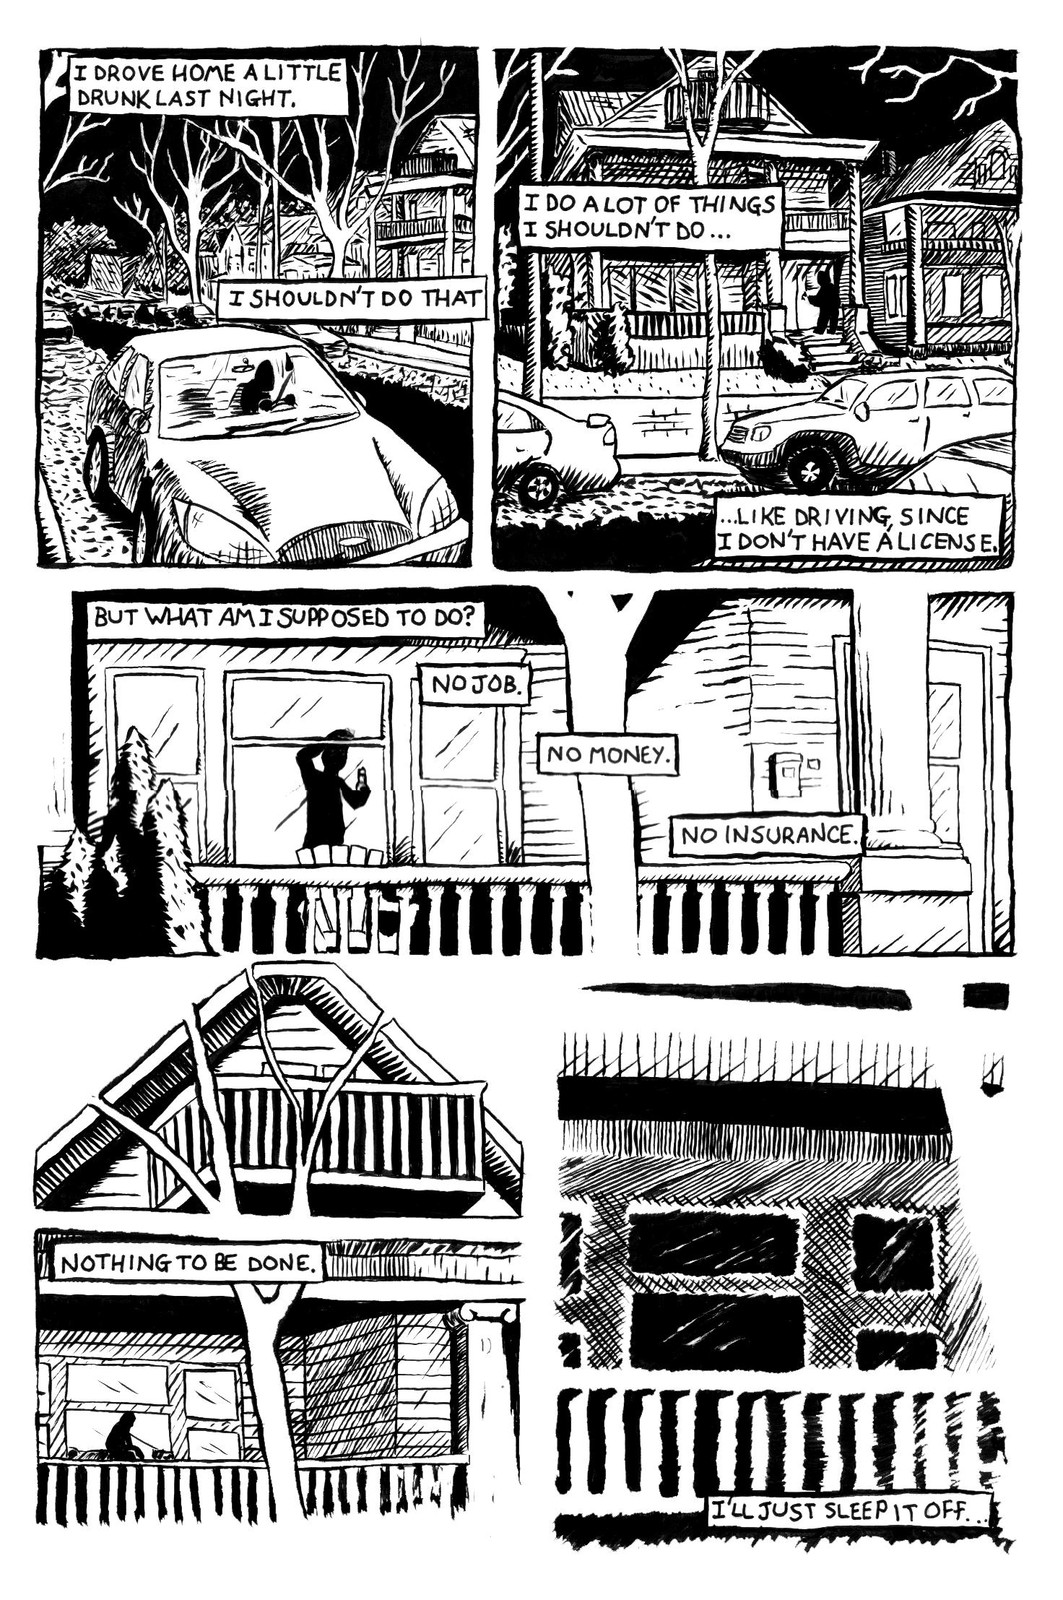 One of the single-page stories. Drawn using brush and ink, touched up digitally.